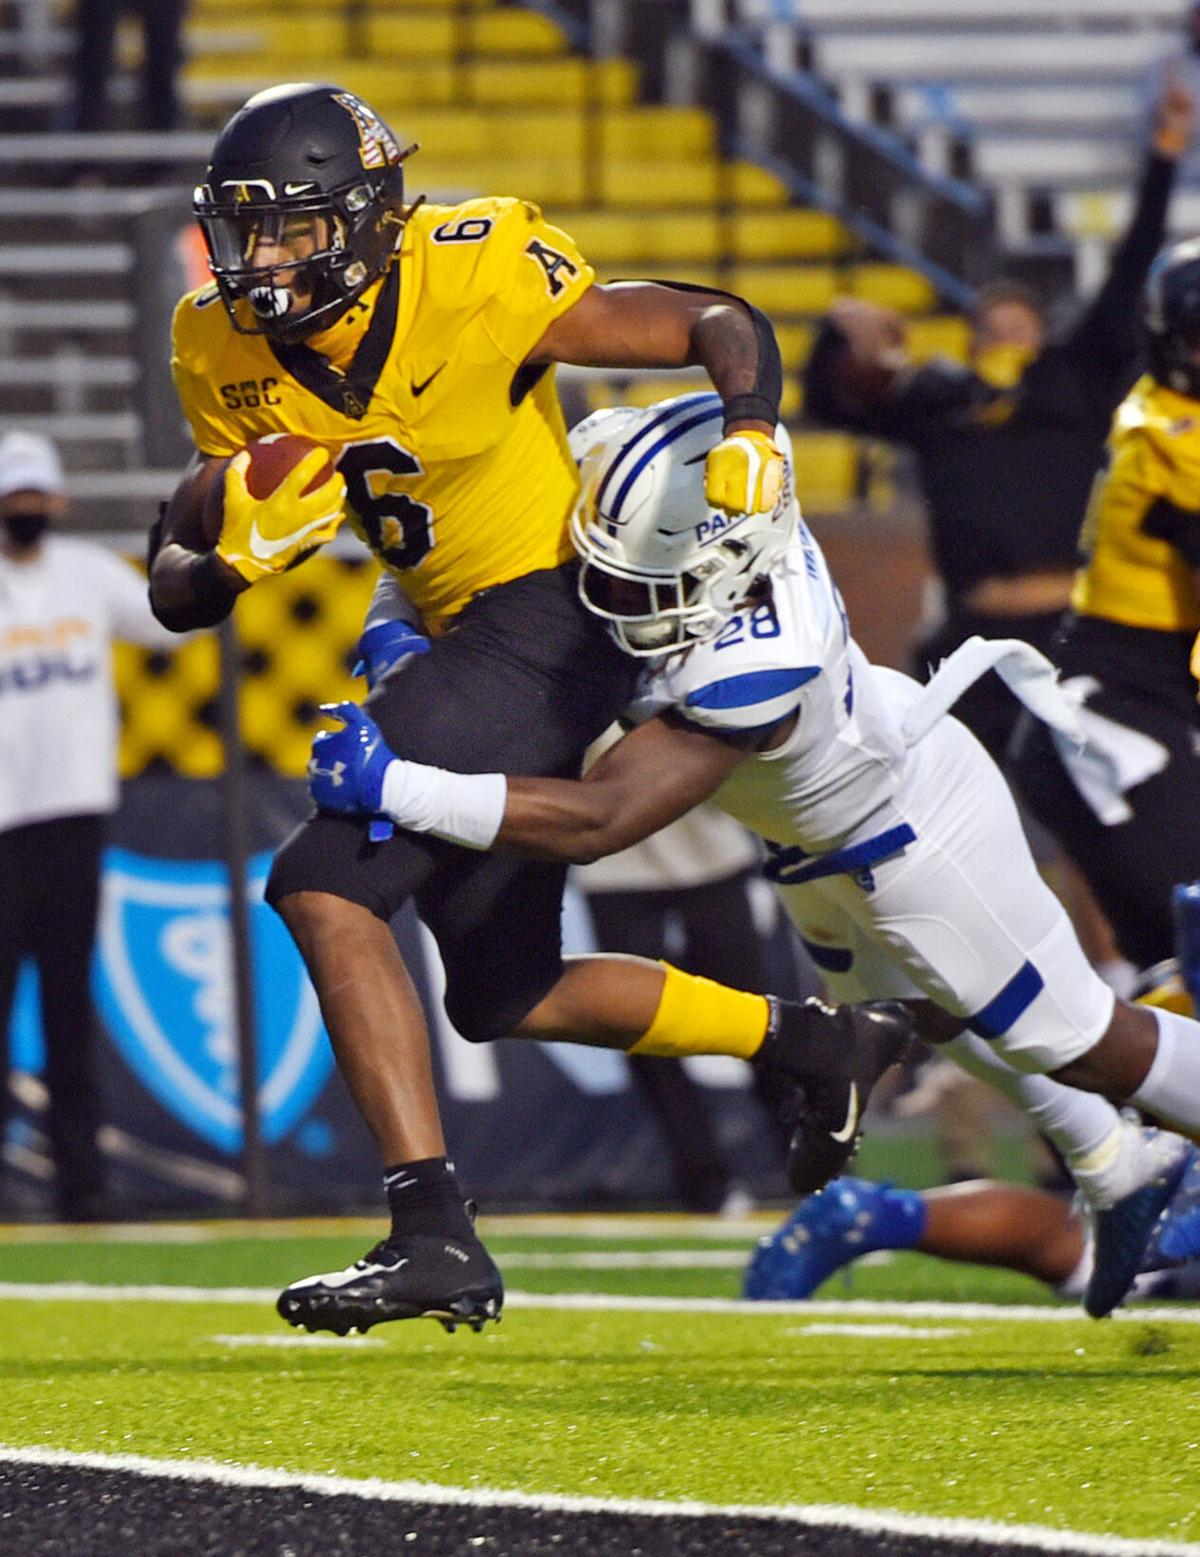 Georgia State Appalachian State football